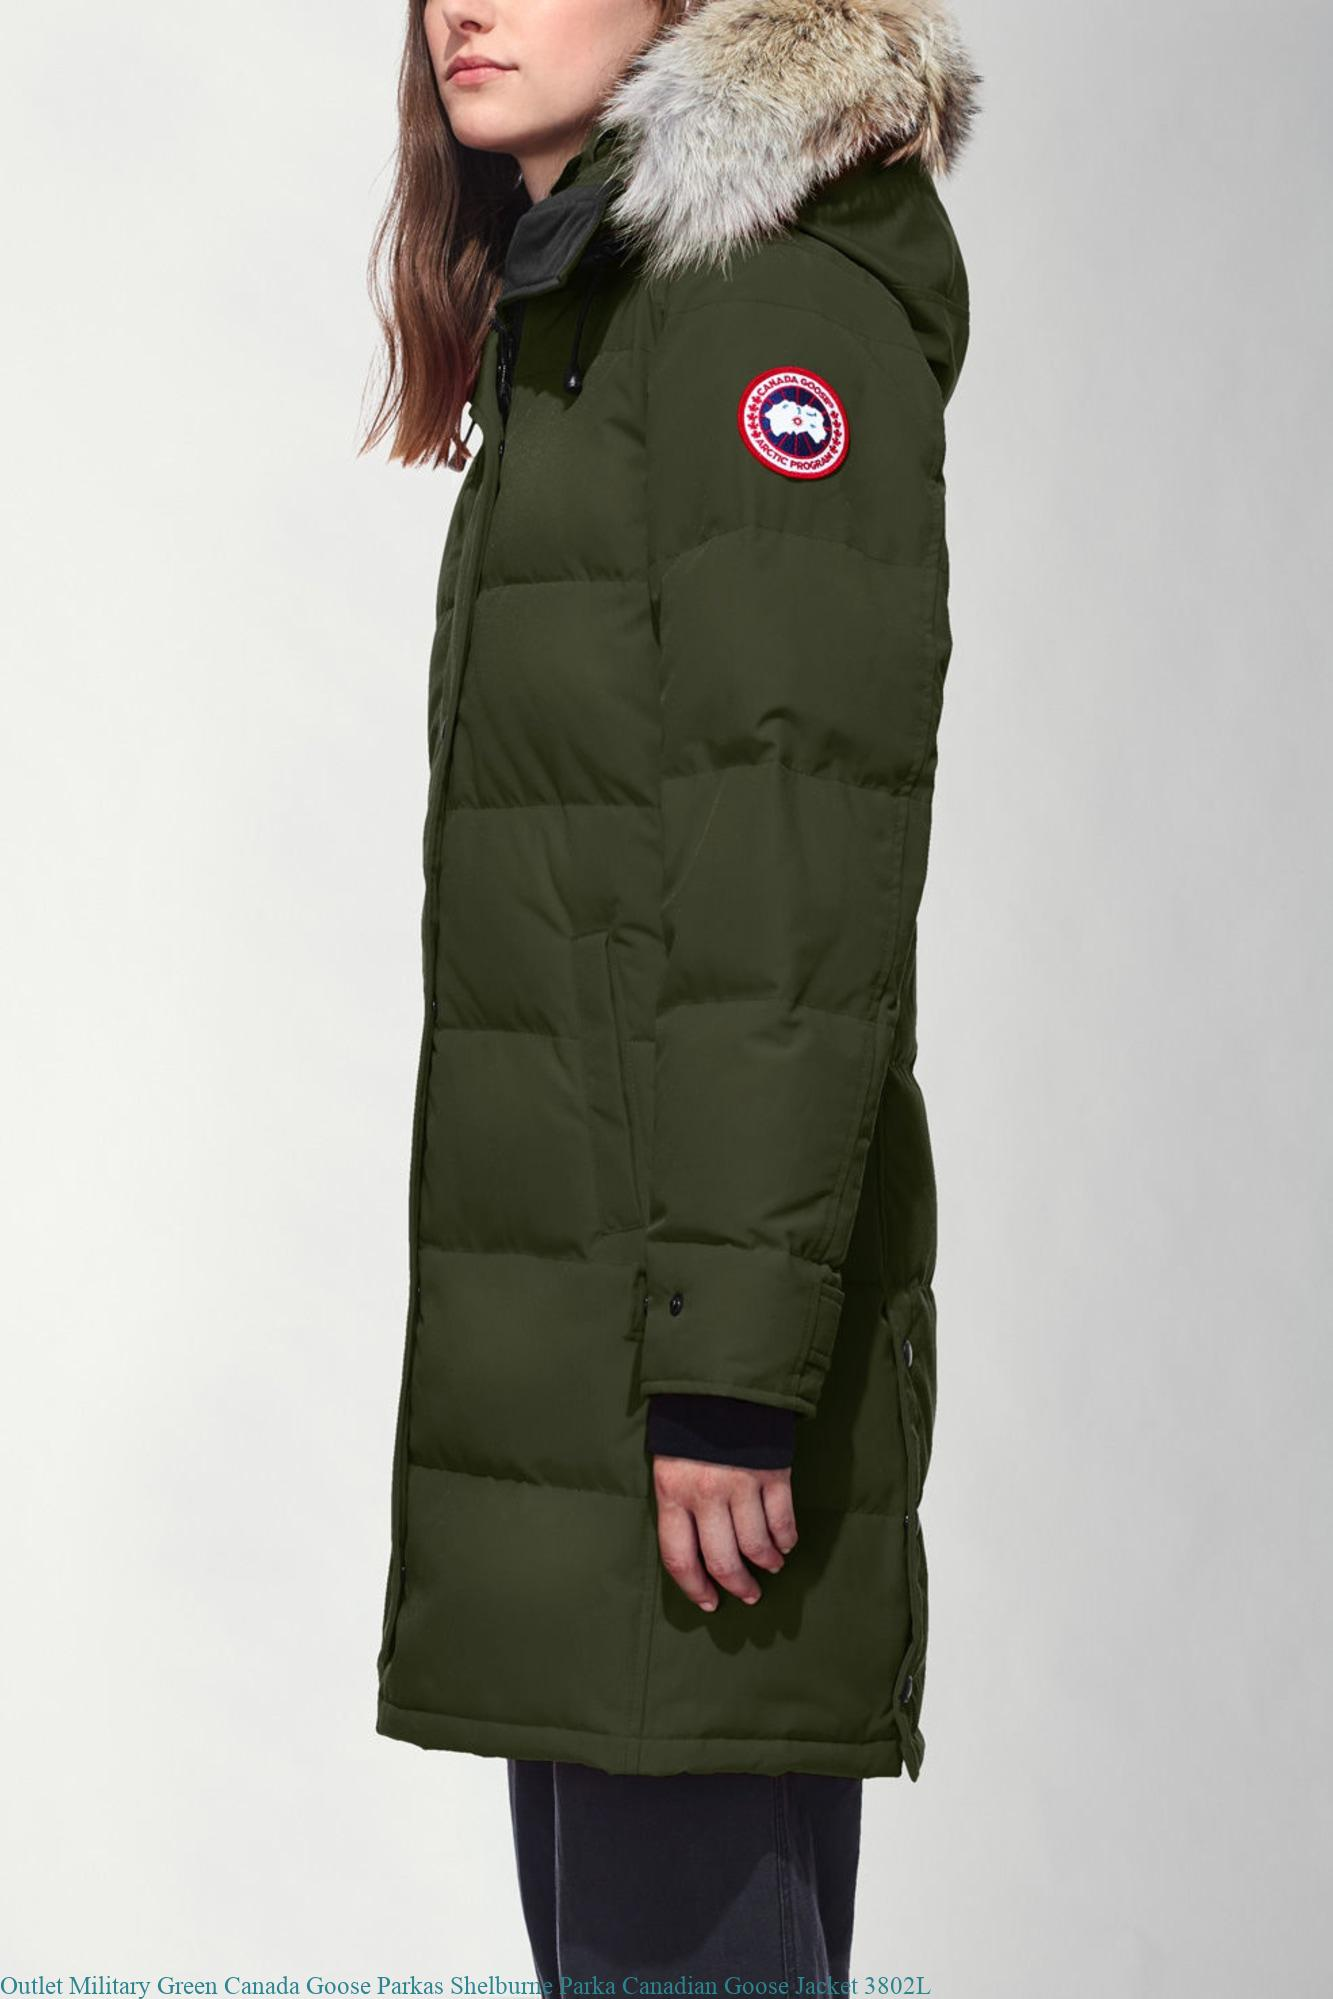 Outlet Military Green Canada Goose Parkas Shelburne Parka Canadian Goose  Jacket 3802L – Cheap Canada Goose Outlet Store Jacket Expedition Parka Sale 12768f63a